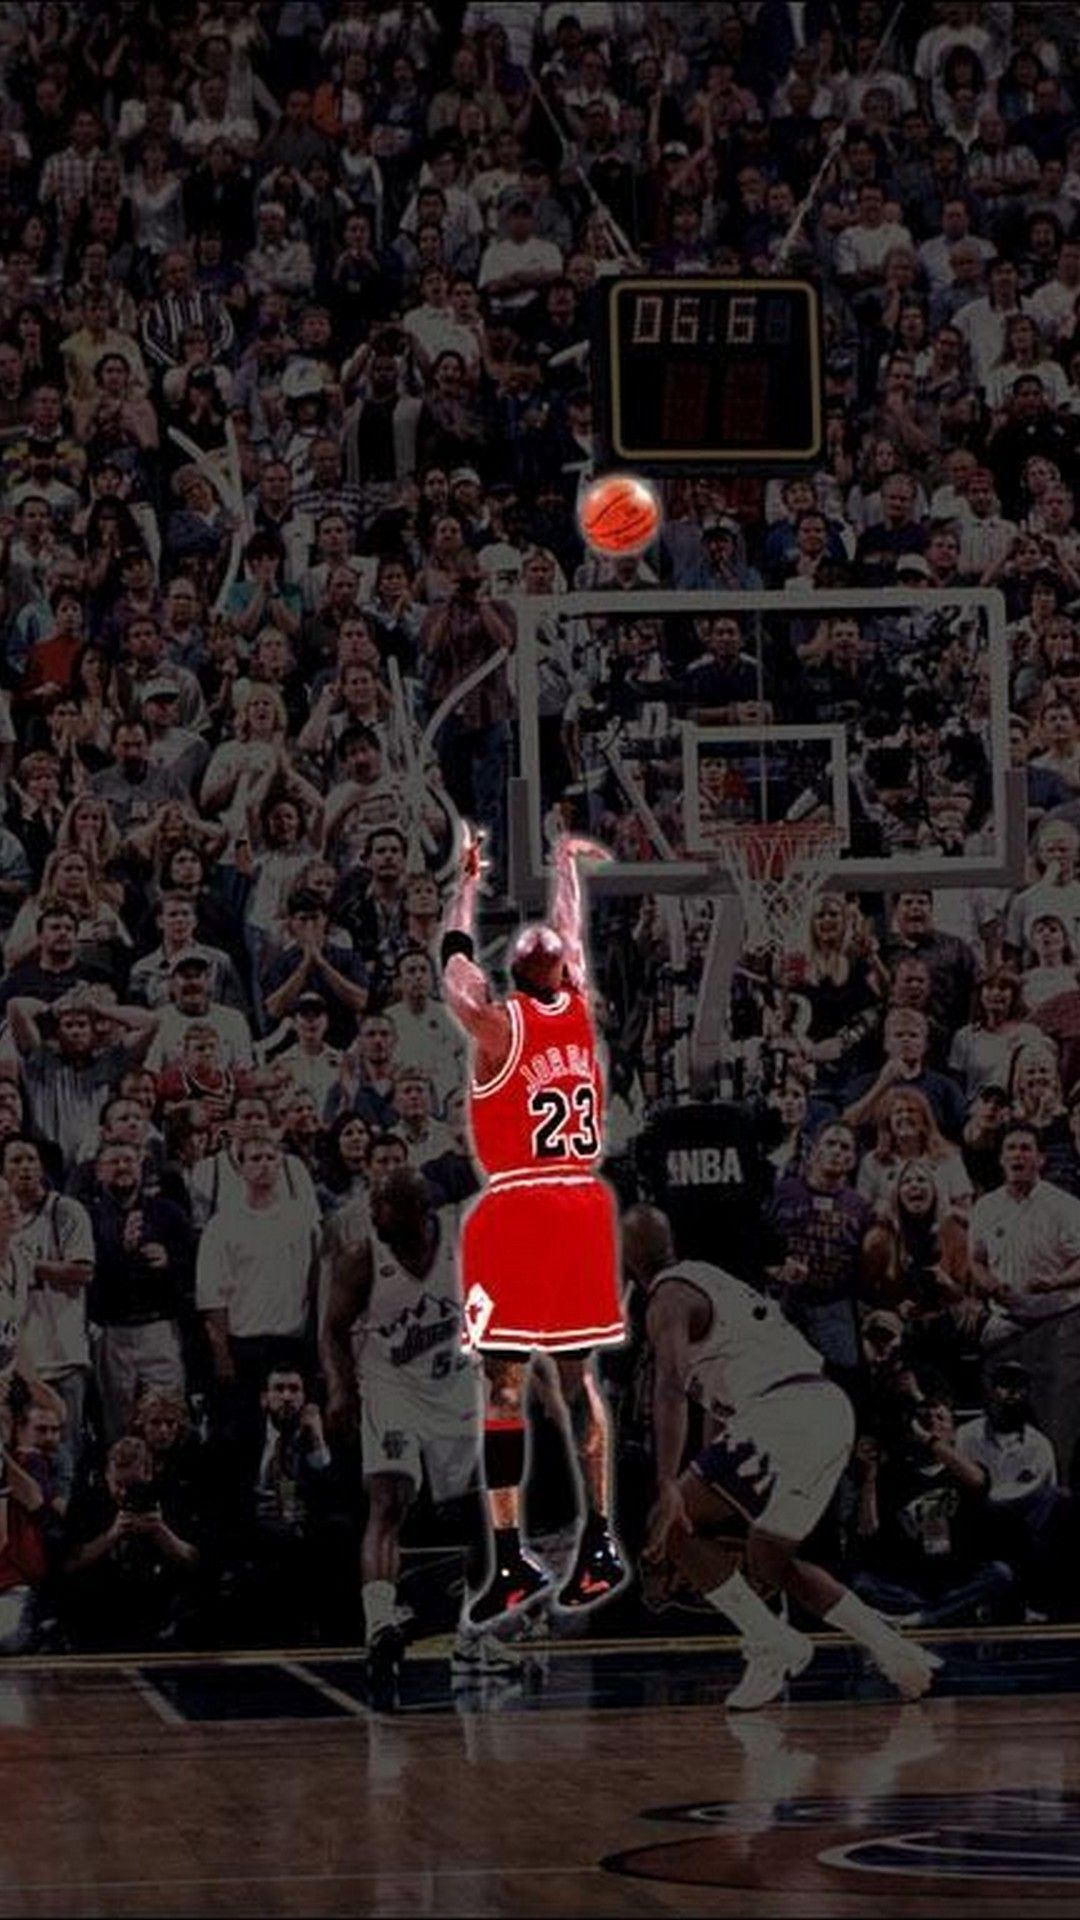 Wallpaper Basketball Mobile Michael jordan wallpaper